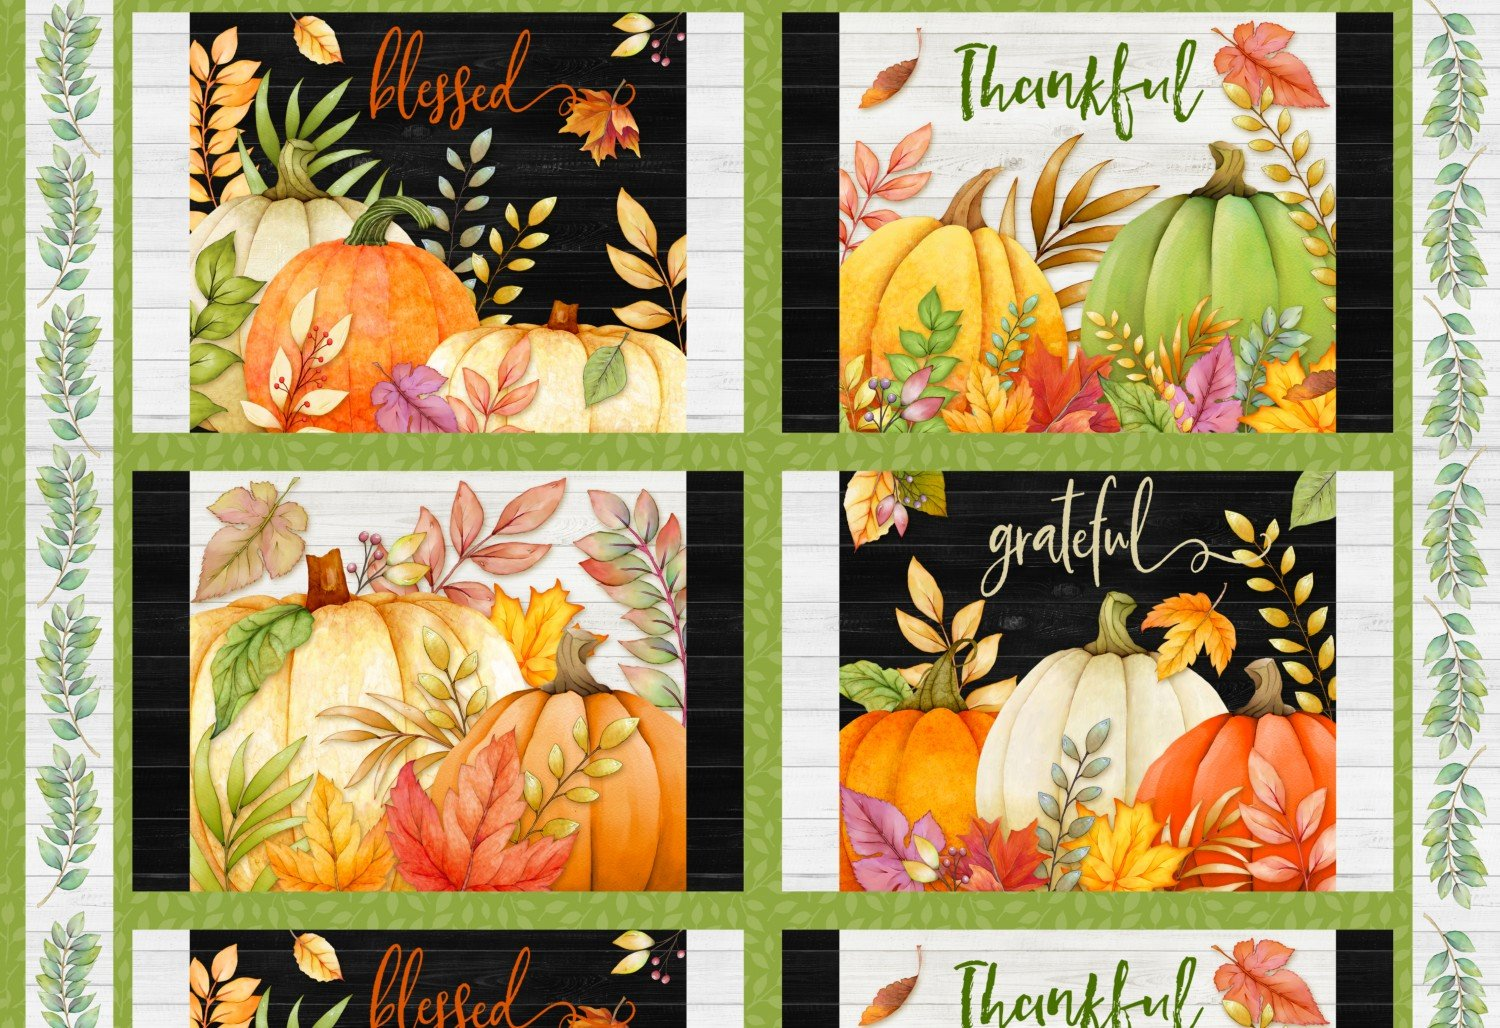 Wilmington - Happy Gatherings-Placemat Panel - 32051-789 - H-4